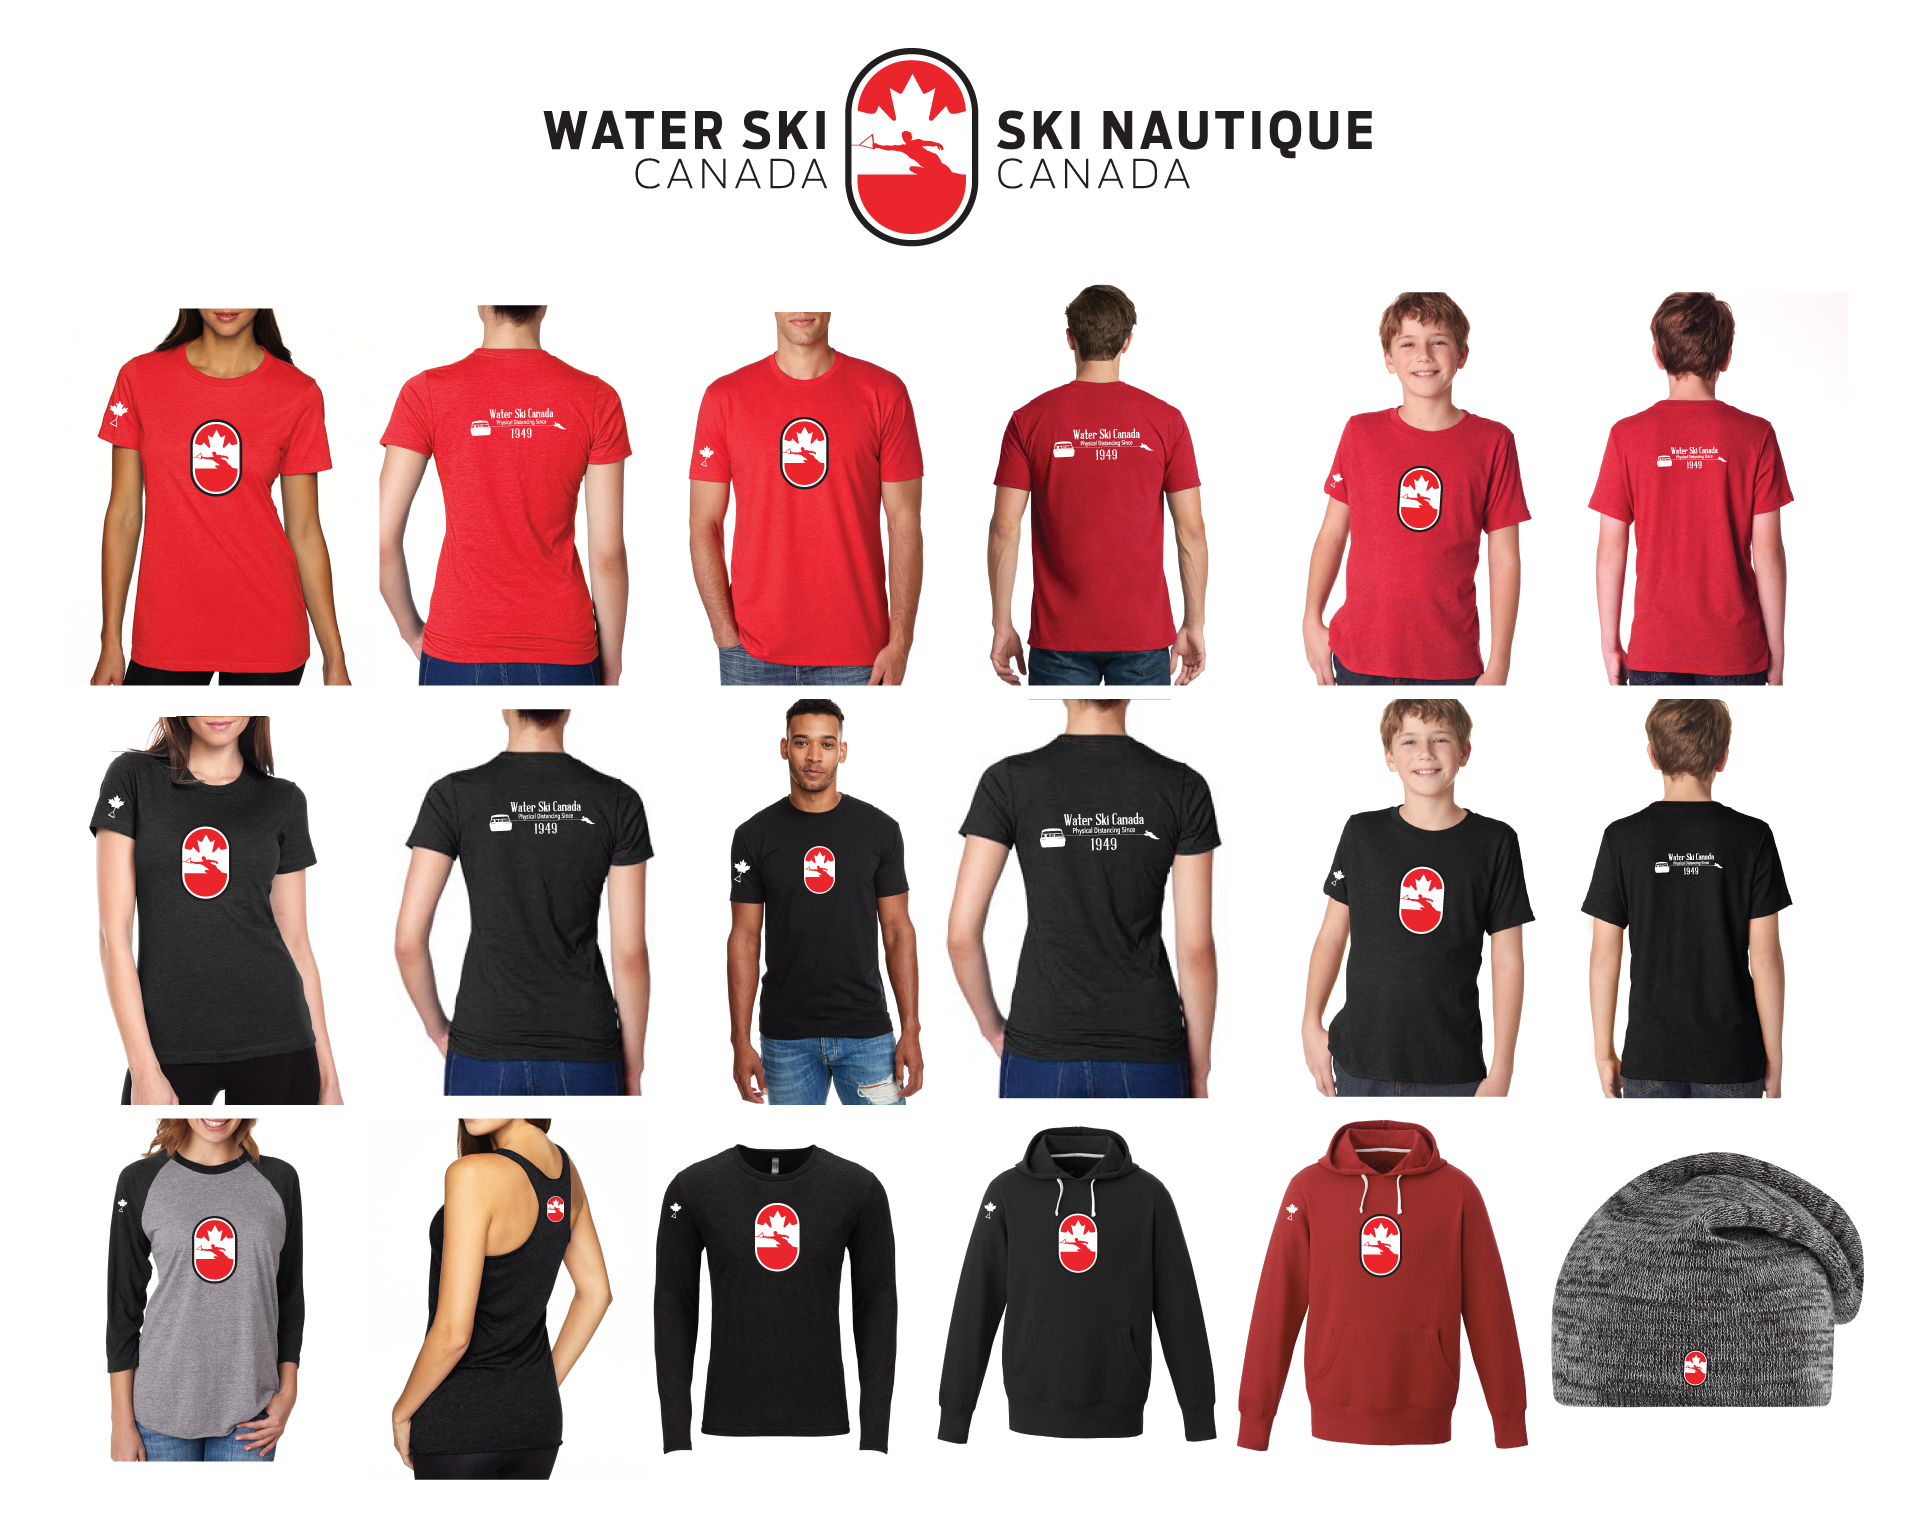 FLASH SALE ON NOW!!! WATER SKI CANADA APPAREL AVAILABLE FOR A LIMITED TIME.